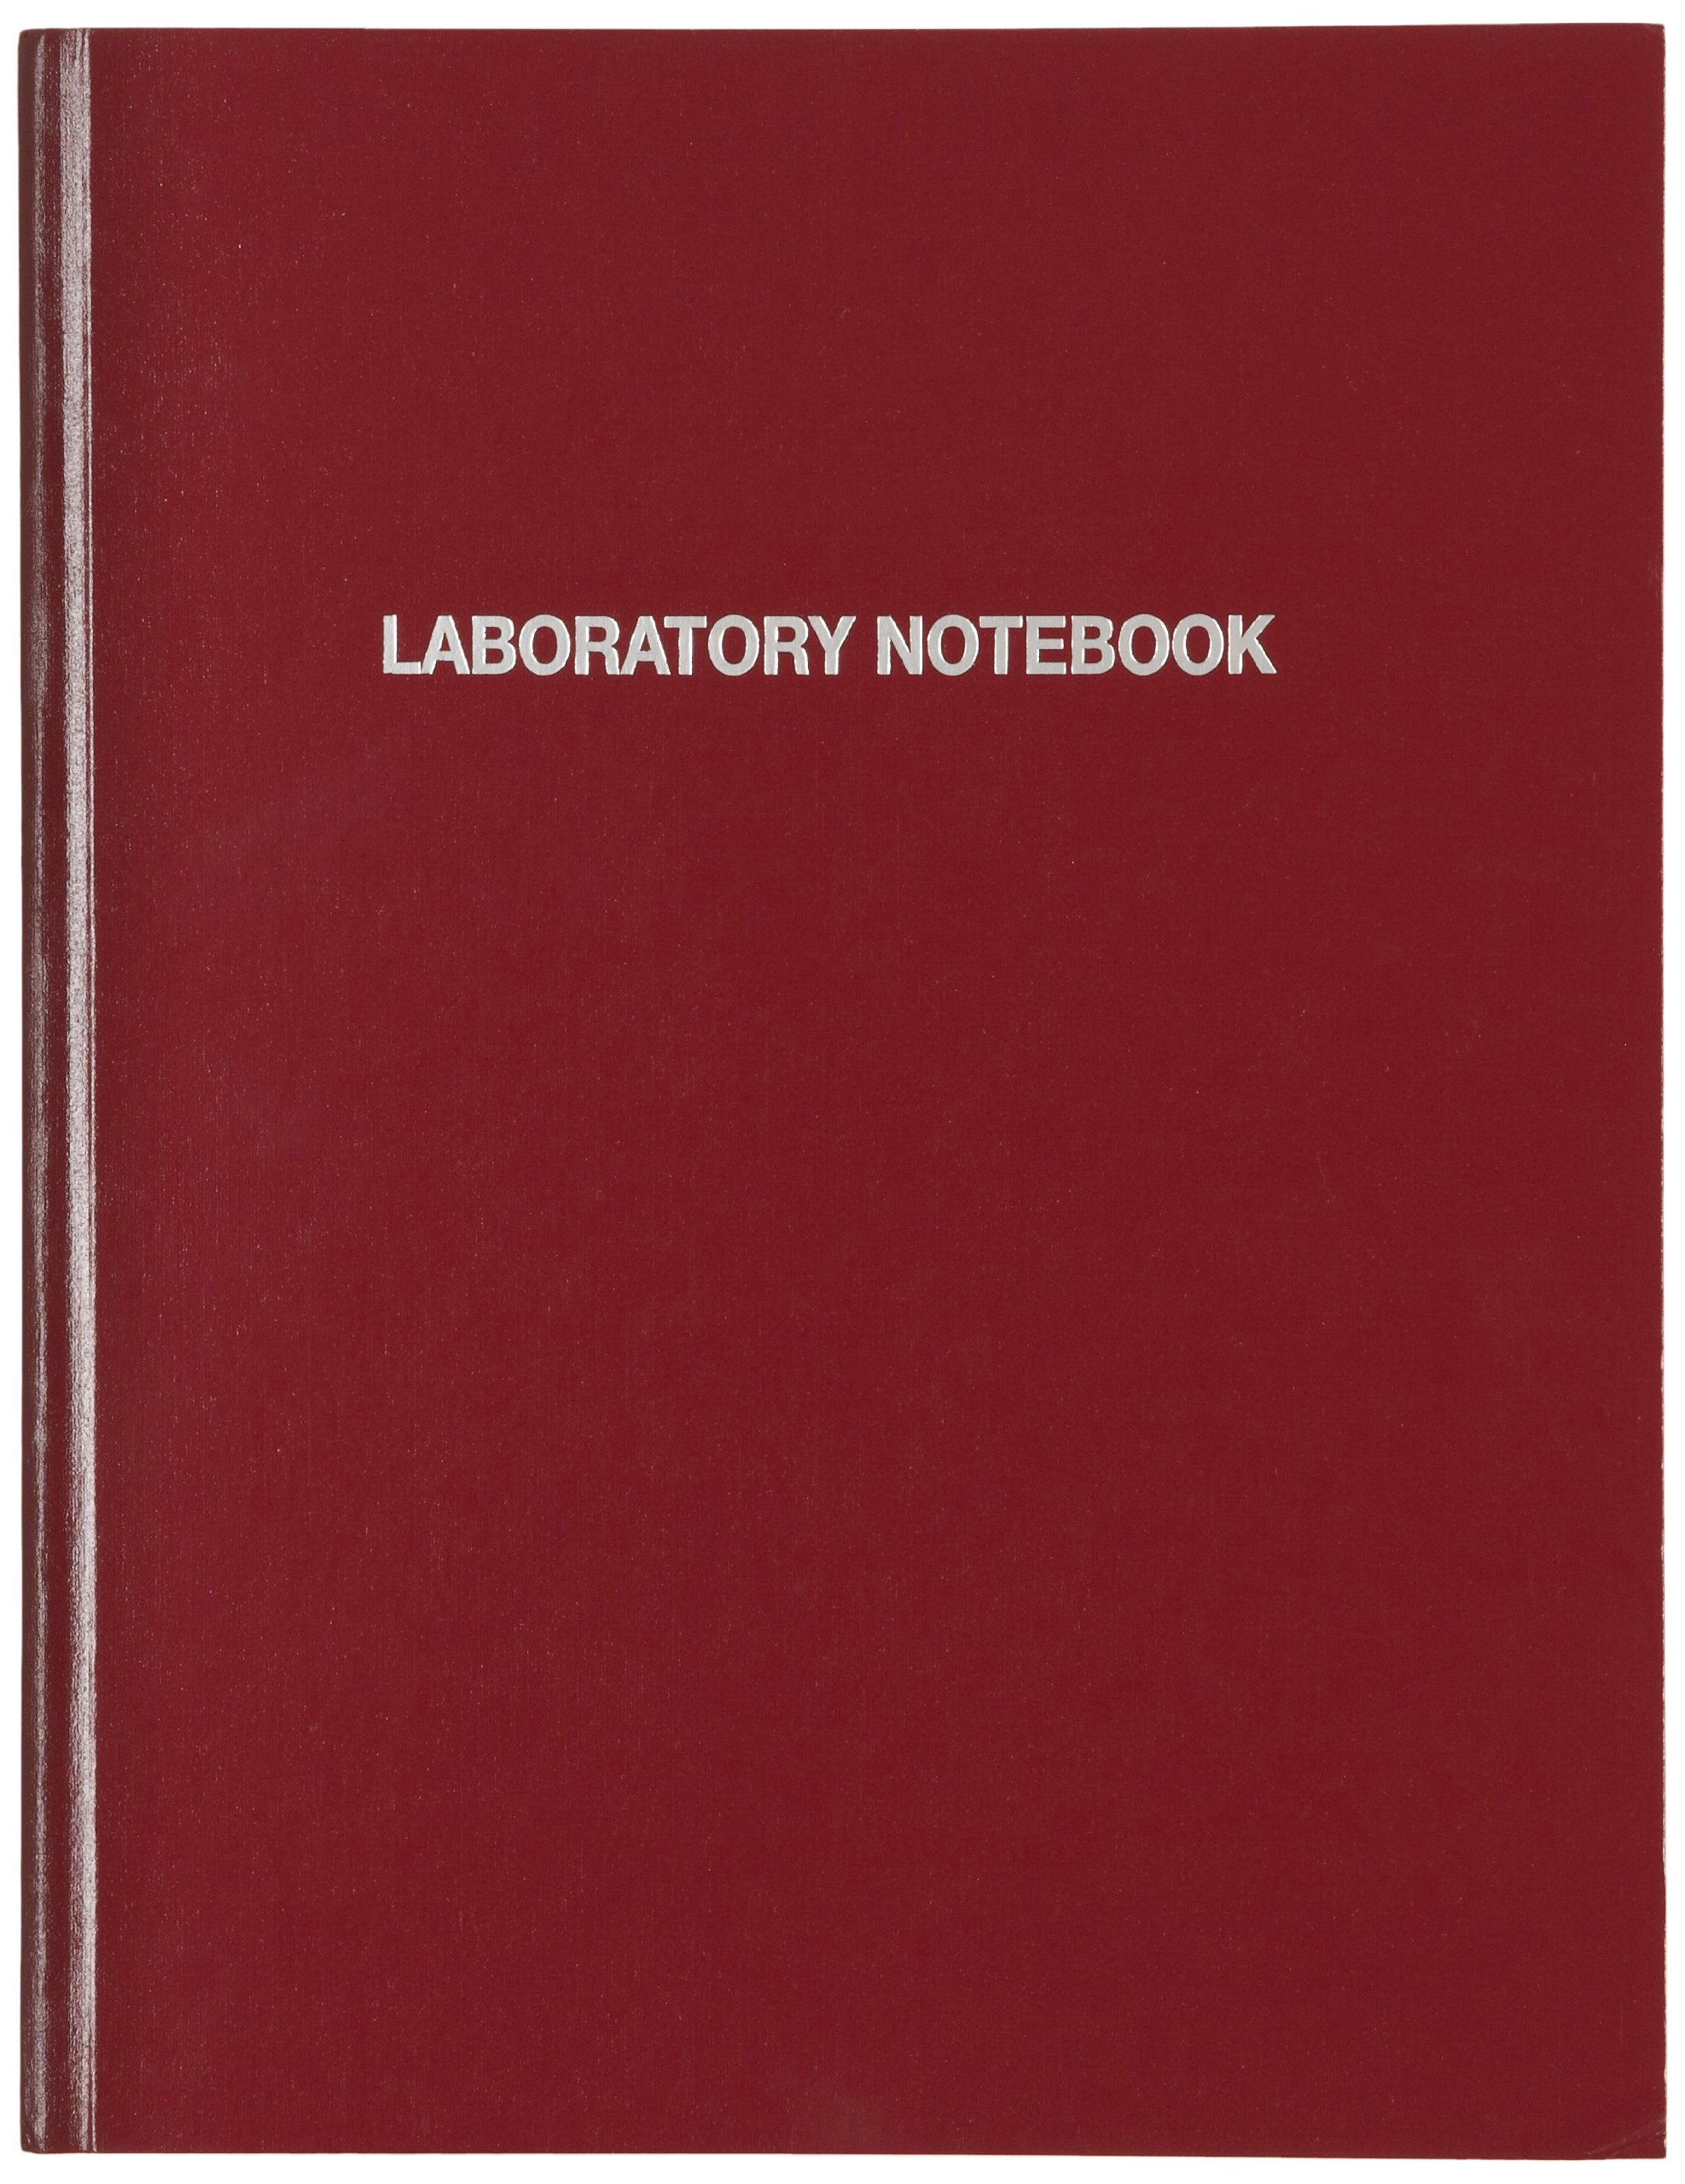 Nalgene 6501-1000 Polyethylene Laboratory Notebook with 1/4 Inch Acid-Free Paper, Burgundy PE Cover, 184 Pages, 11'' Length x 8-1/2'' Width (Case of 6)